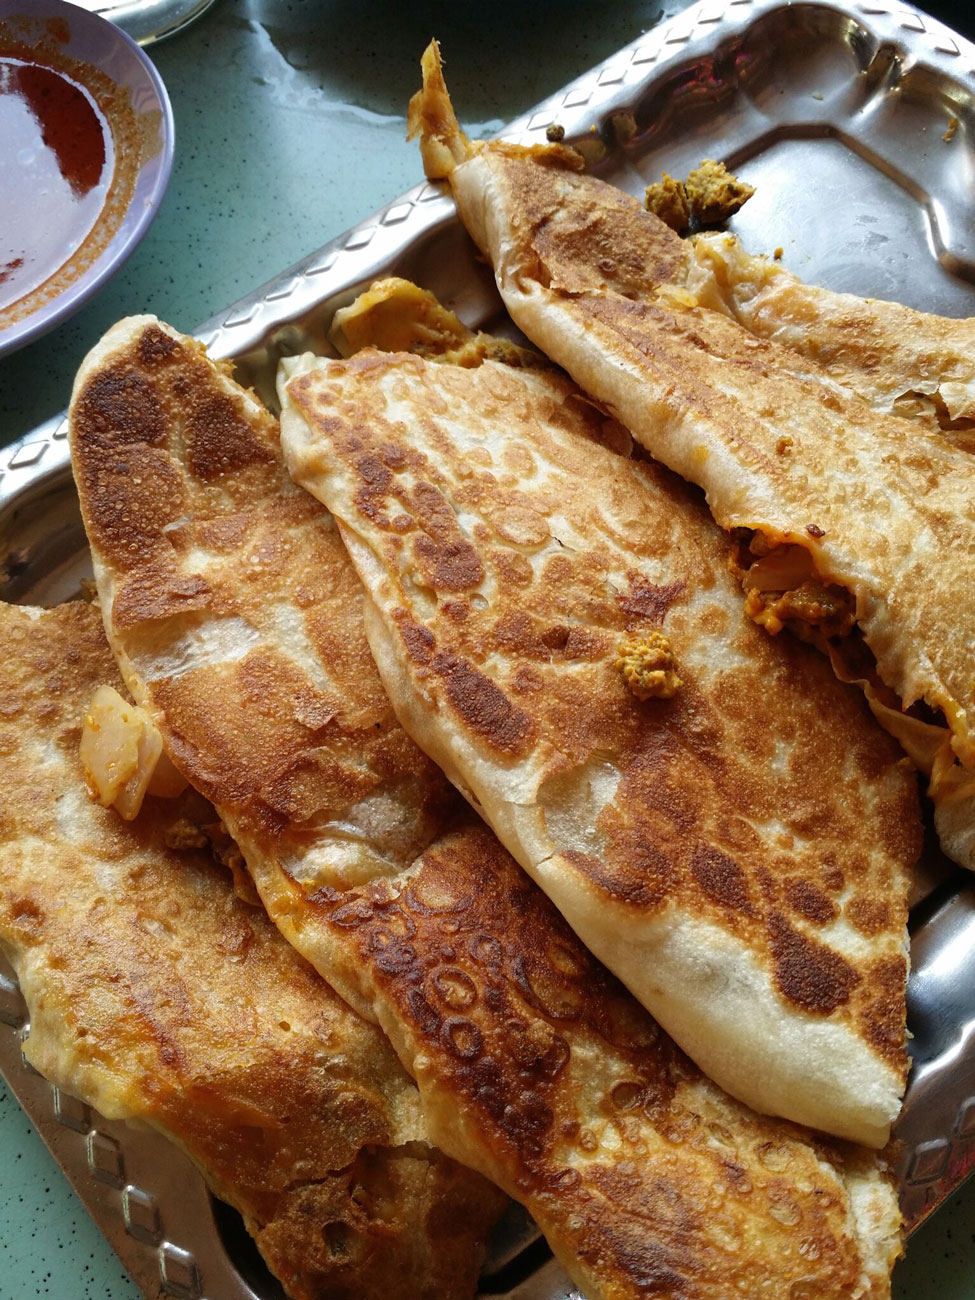 A silver plate filled with Roti Prata.